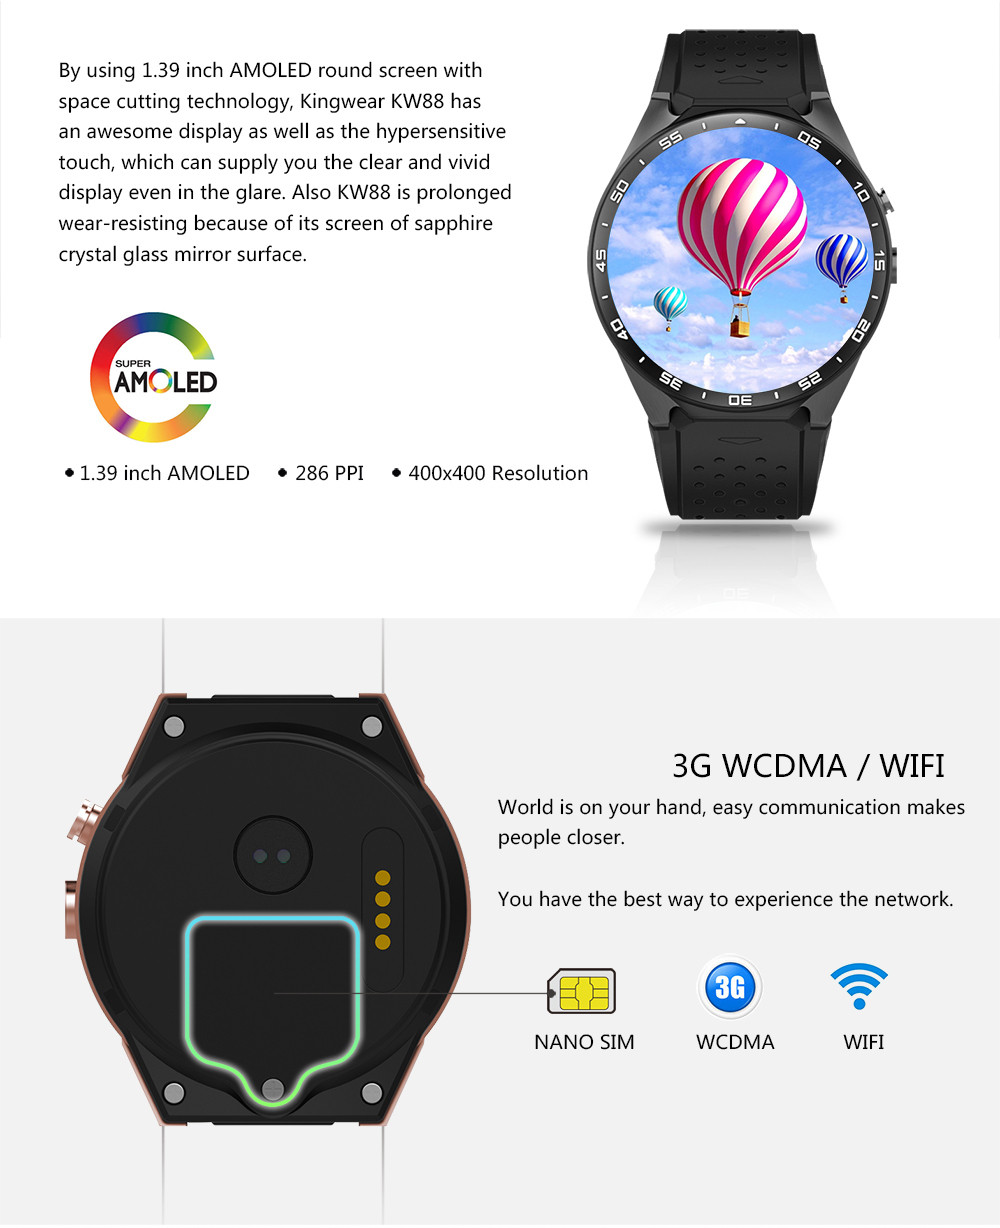 Kw88 android 5.1 smart watch 512 mb + 4 gb bluetooth 4.0 wifi 3g smartwatch telefon kol saati desteği google voice gps harita